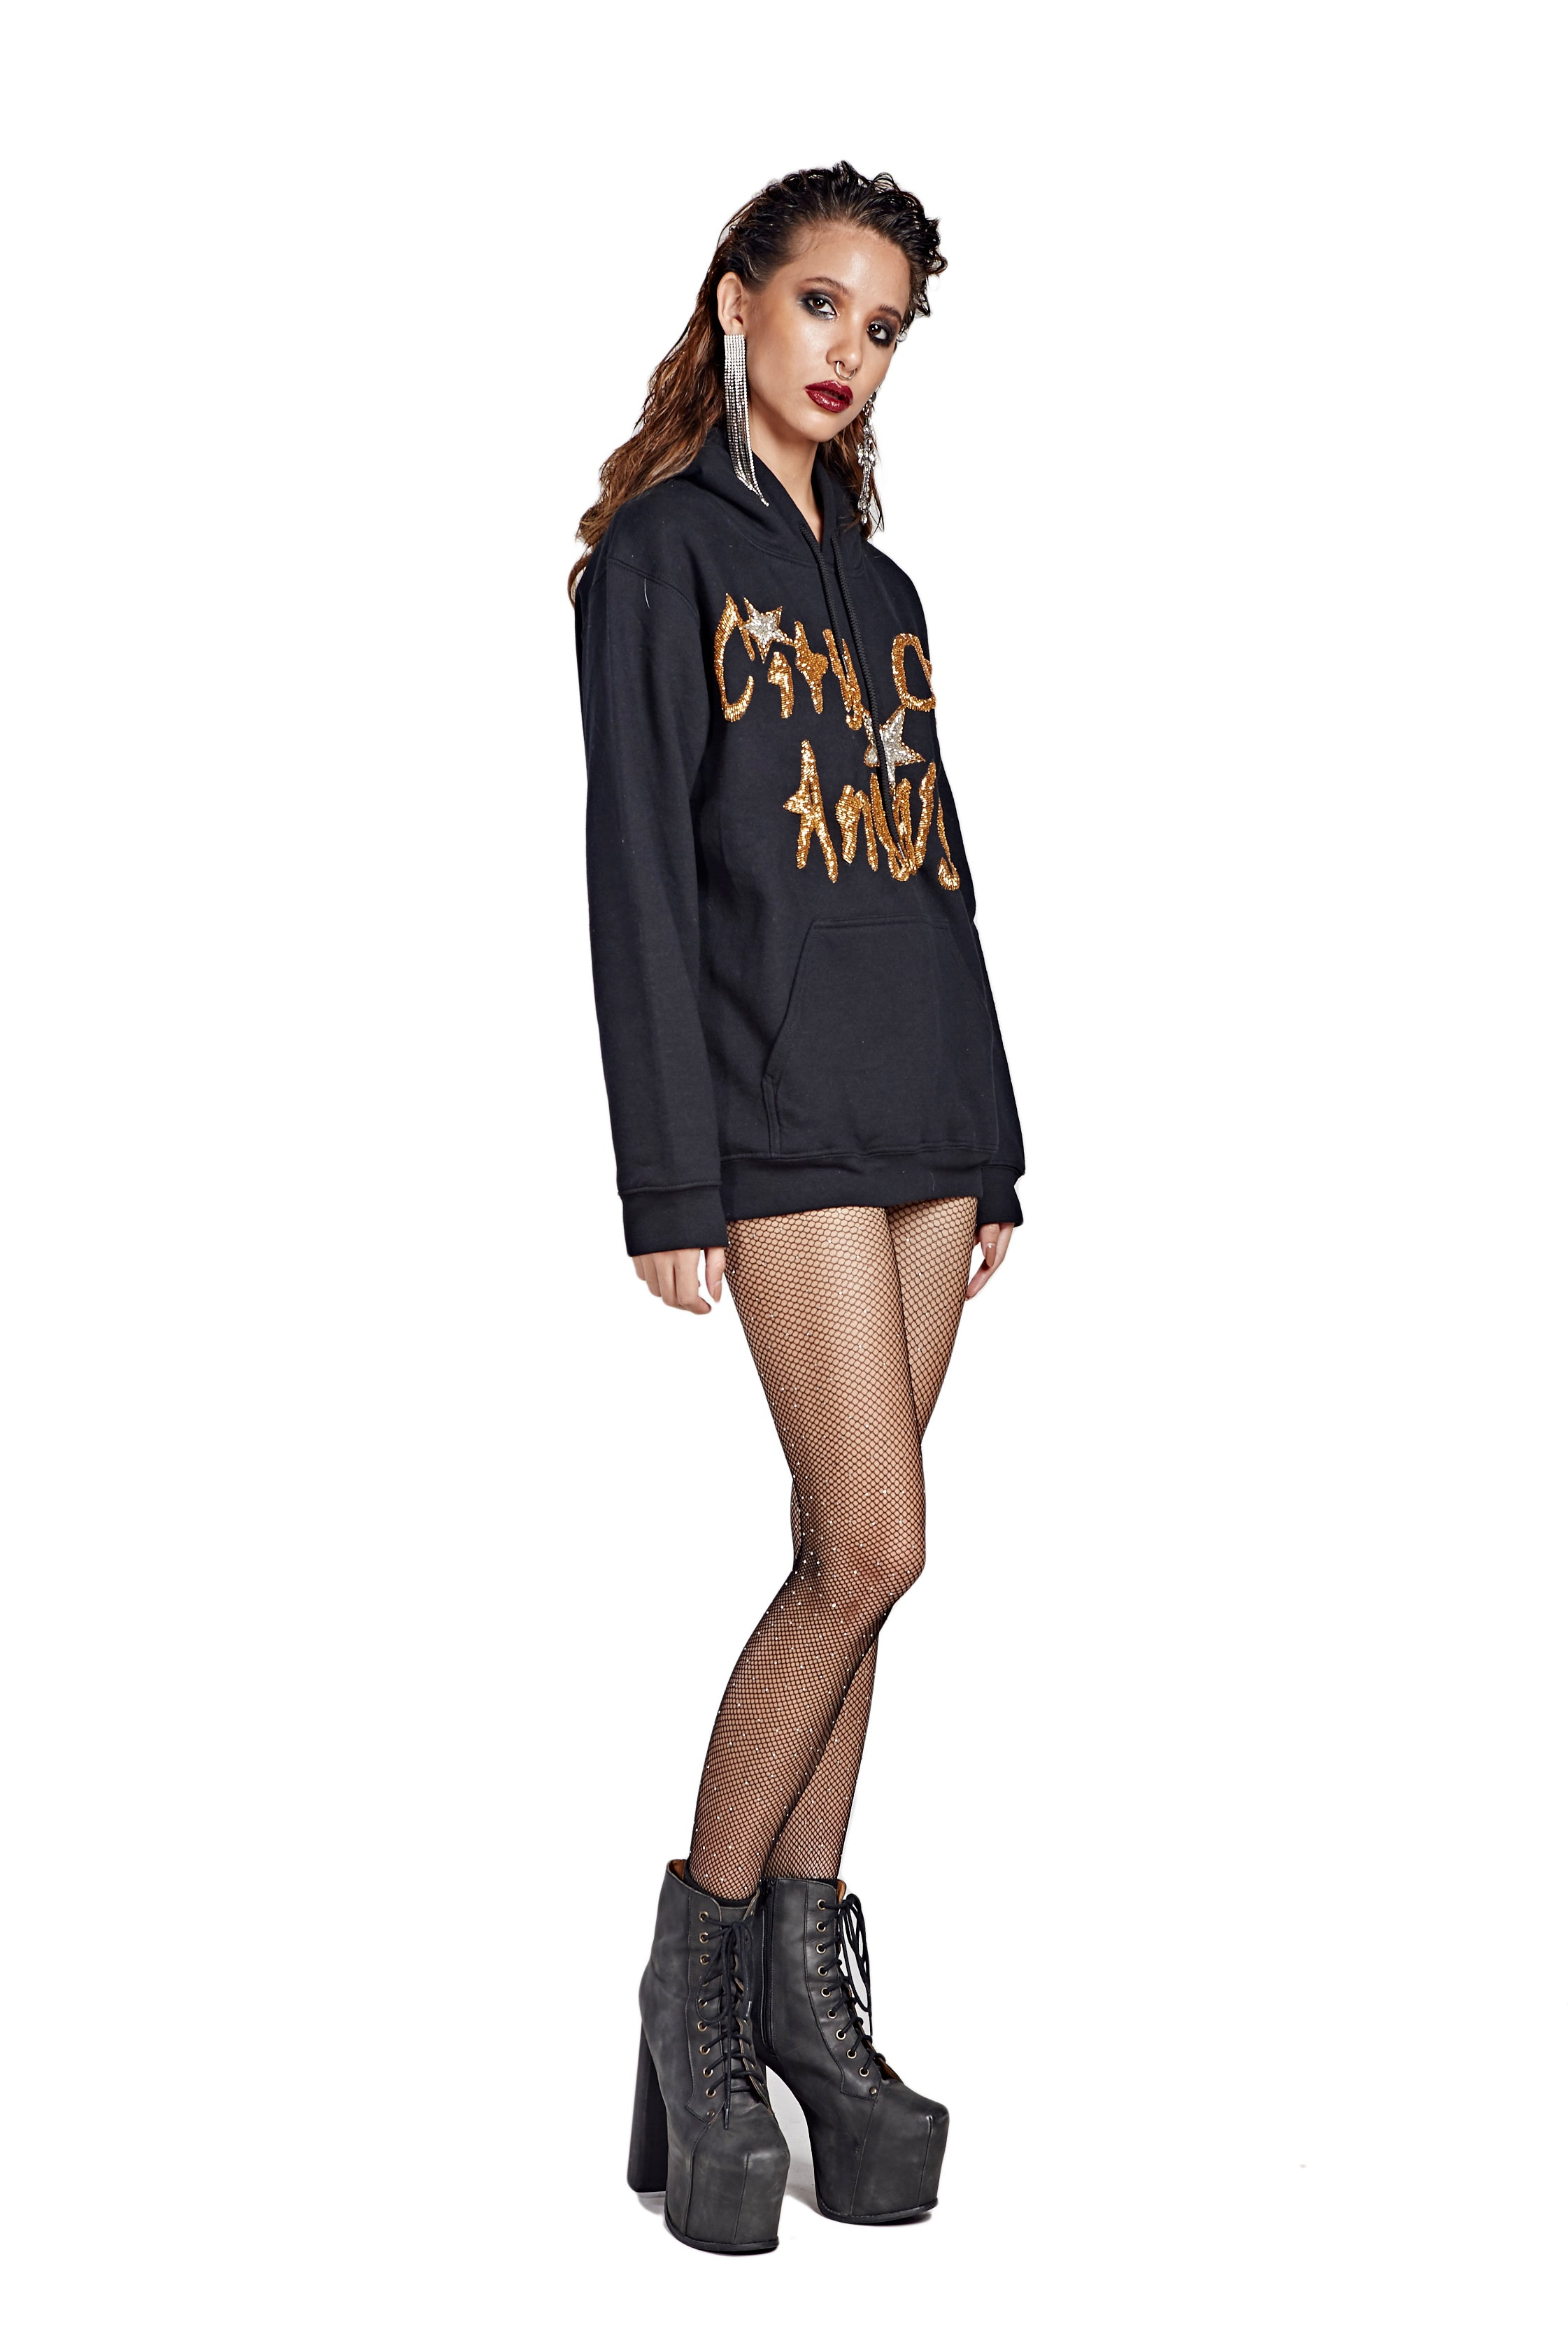 City of Angels Hoodie - Black with Gold Text - I LOVE DIY by Panida